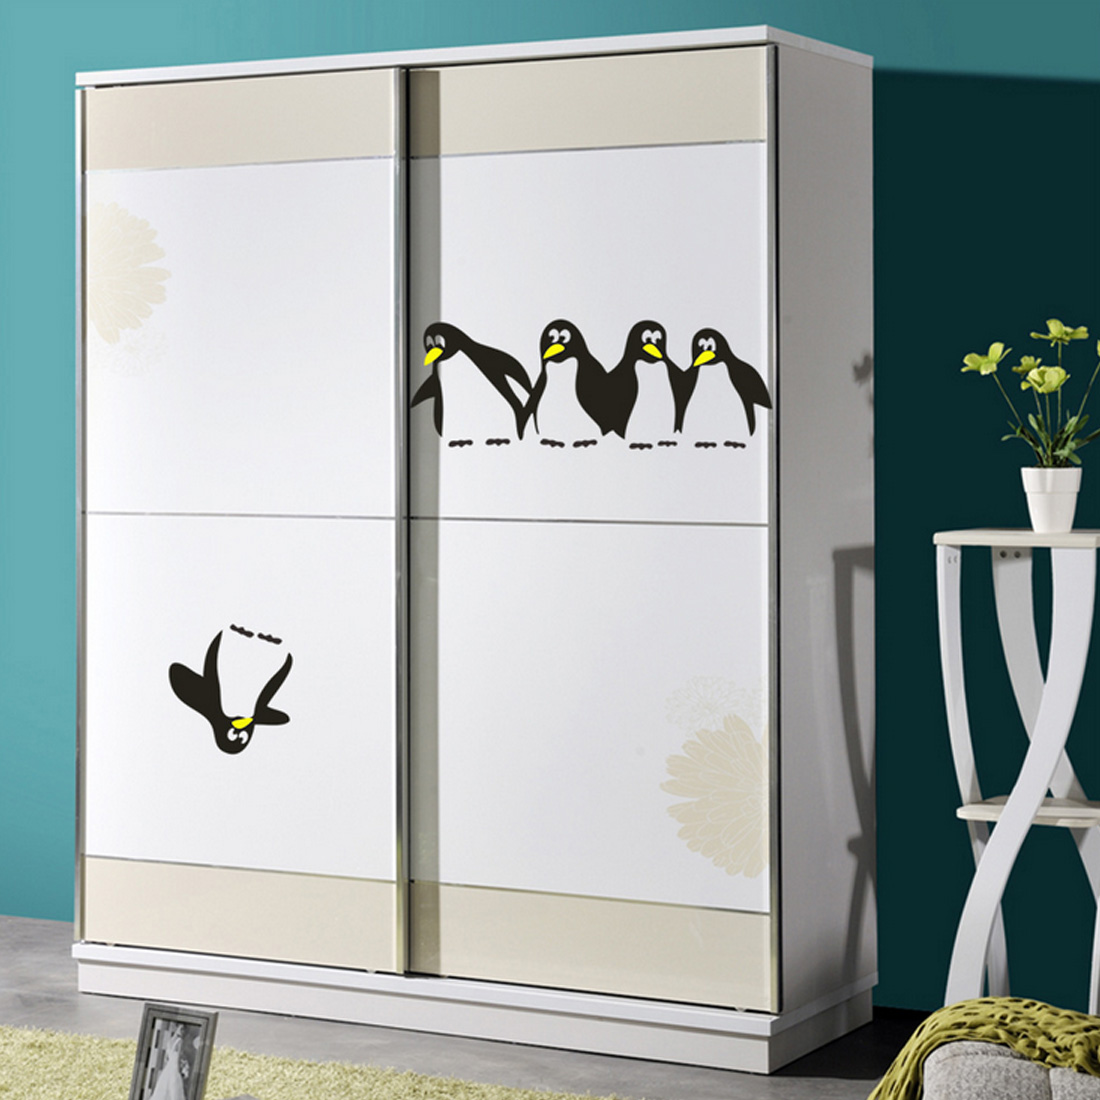 1PC Cute Penguin Funny Kitchen Fridge Sticker Dining Room Kitchen Decorative Wall Stickers Home DIY Decals